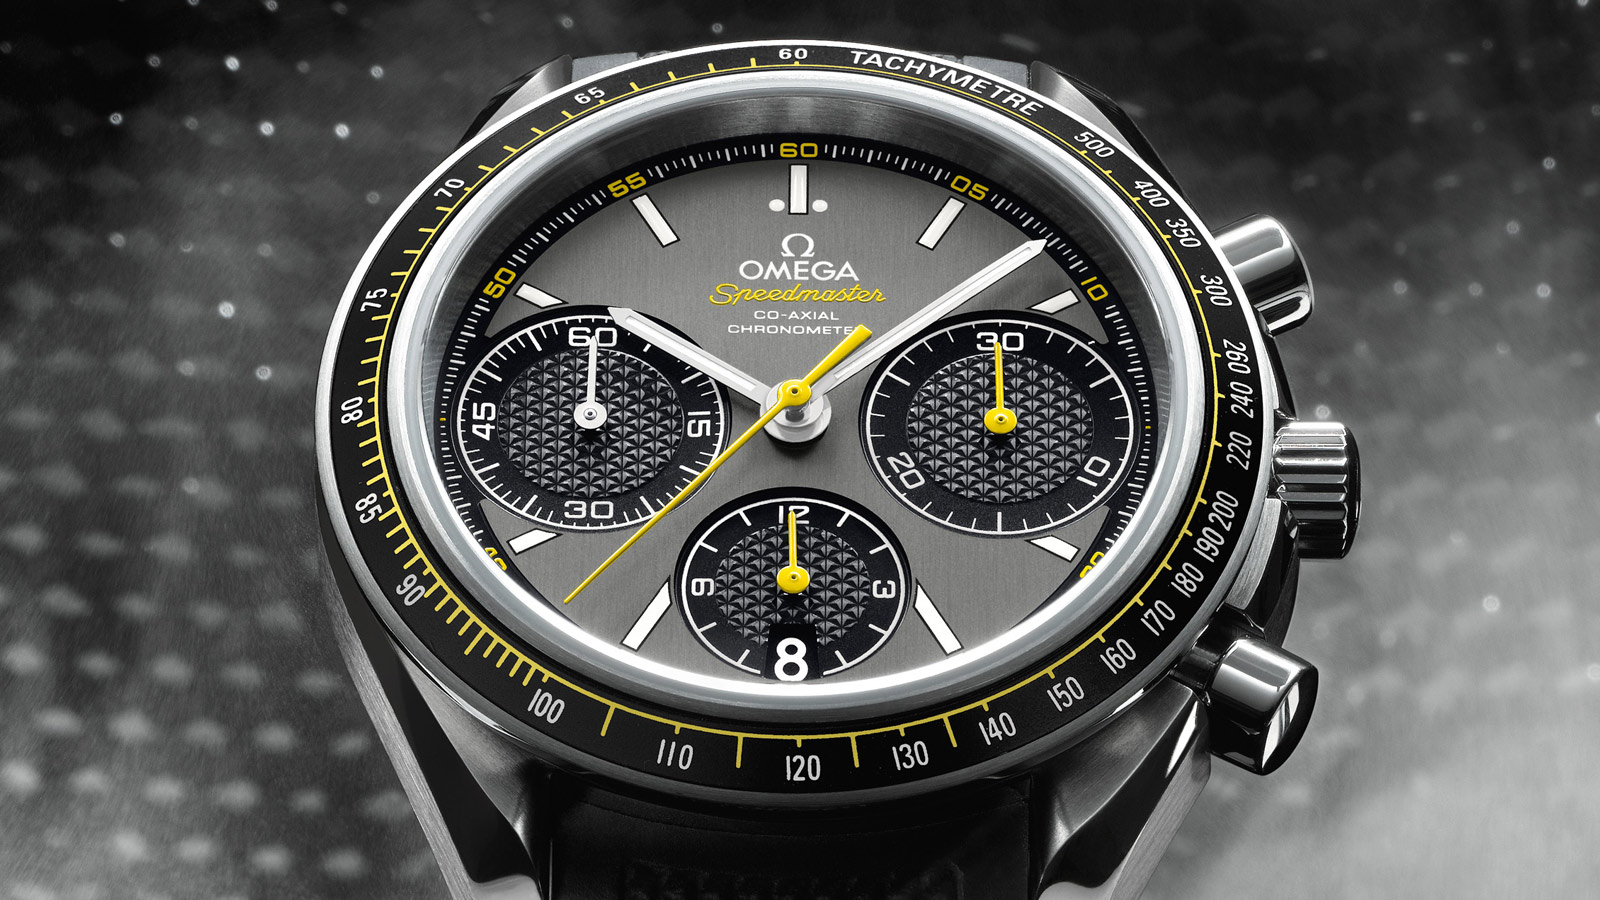 Speedmaster スピードマスター レーシング Racing Co‑Axial Chronograph 40 mm - 326.32.40.50.06.001 - ビュー 2